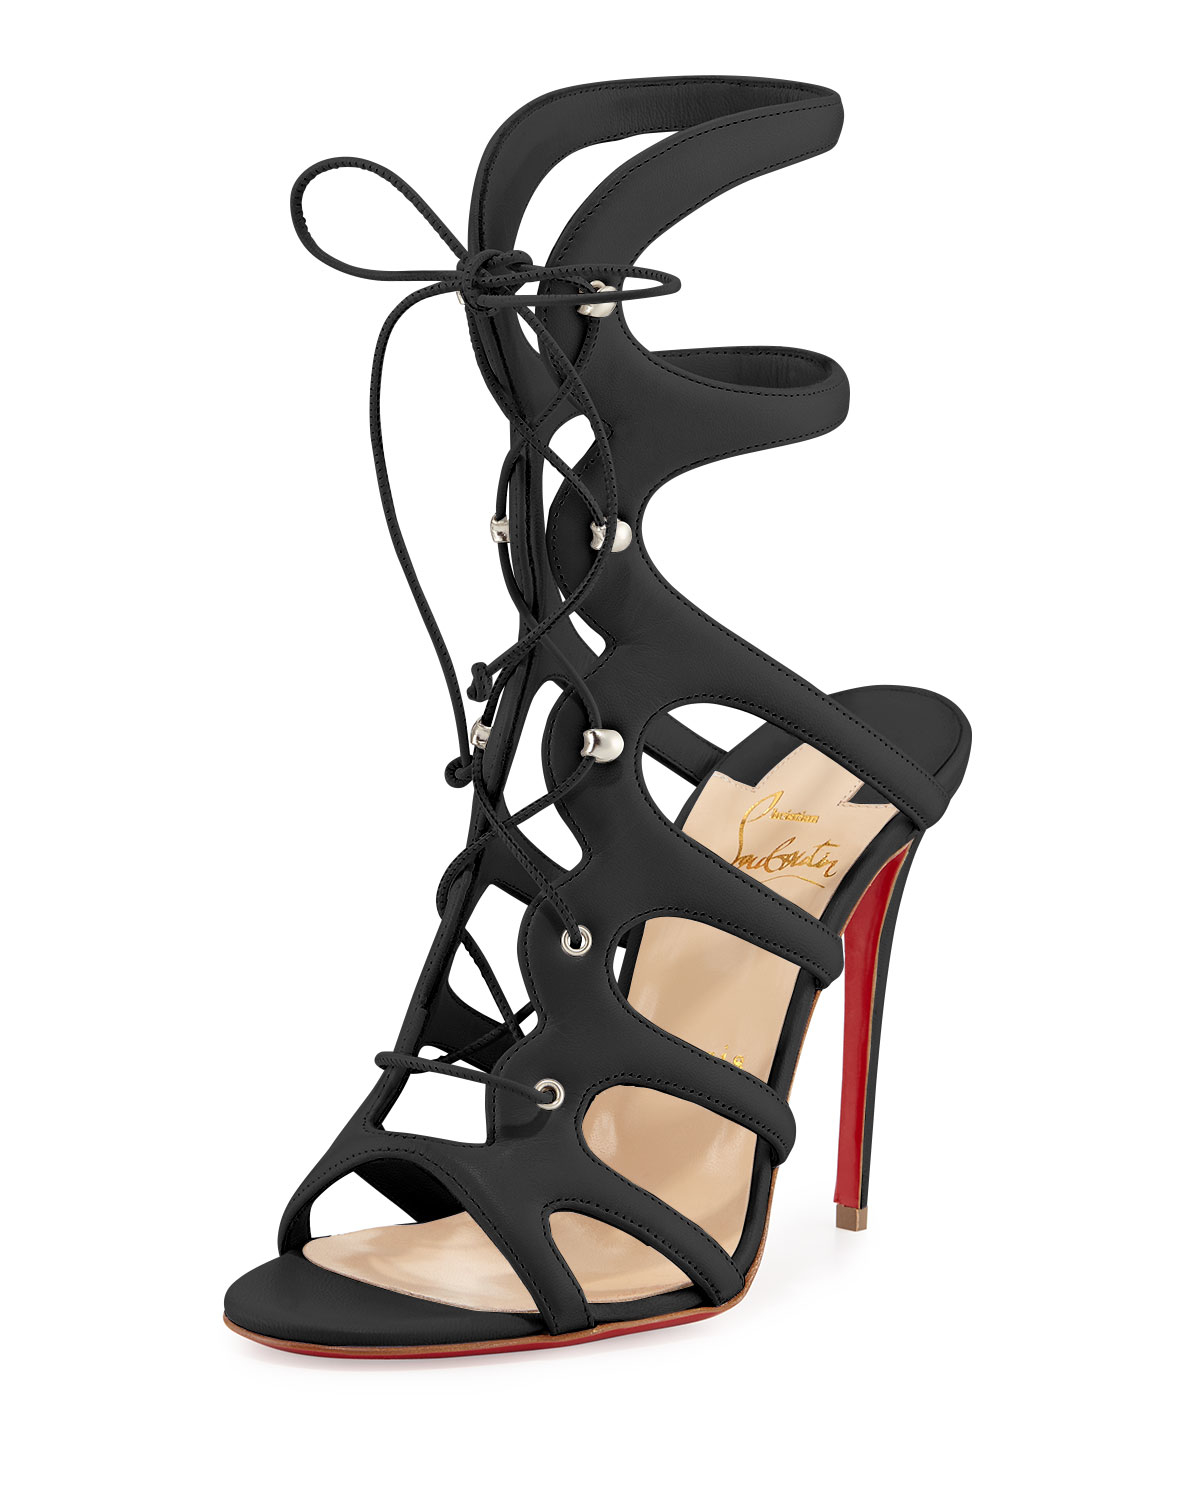 replica men - Christian louboutin Amazoulo Lace-up Red Sole Sandal in Black | Lyst